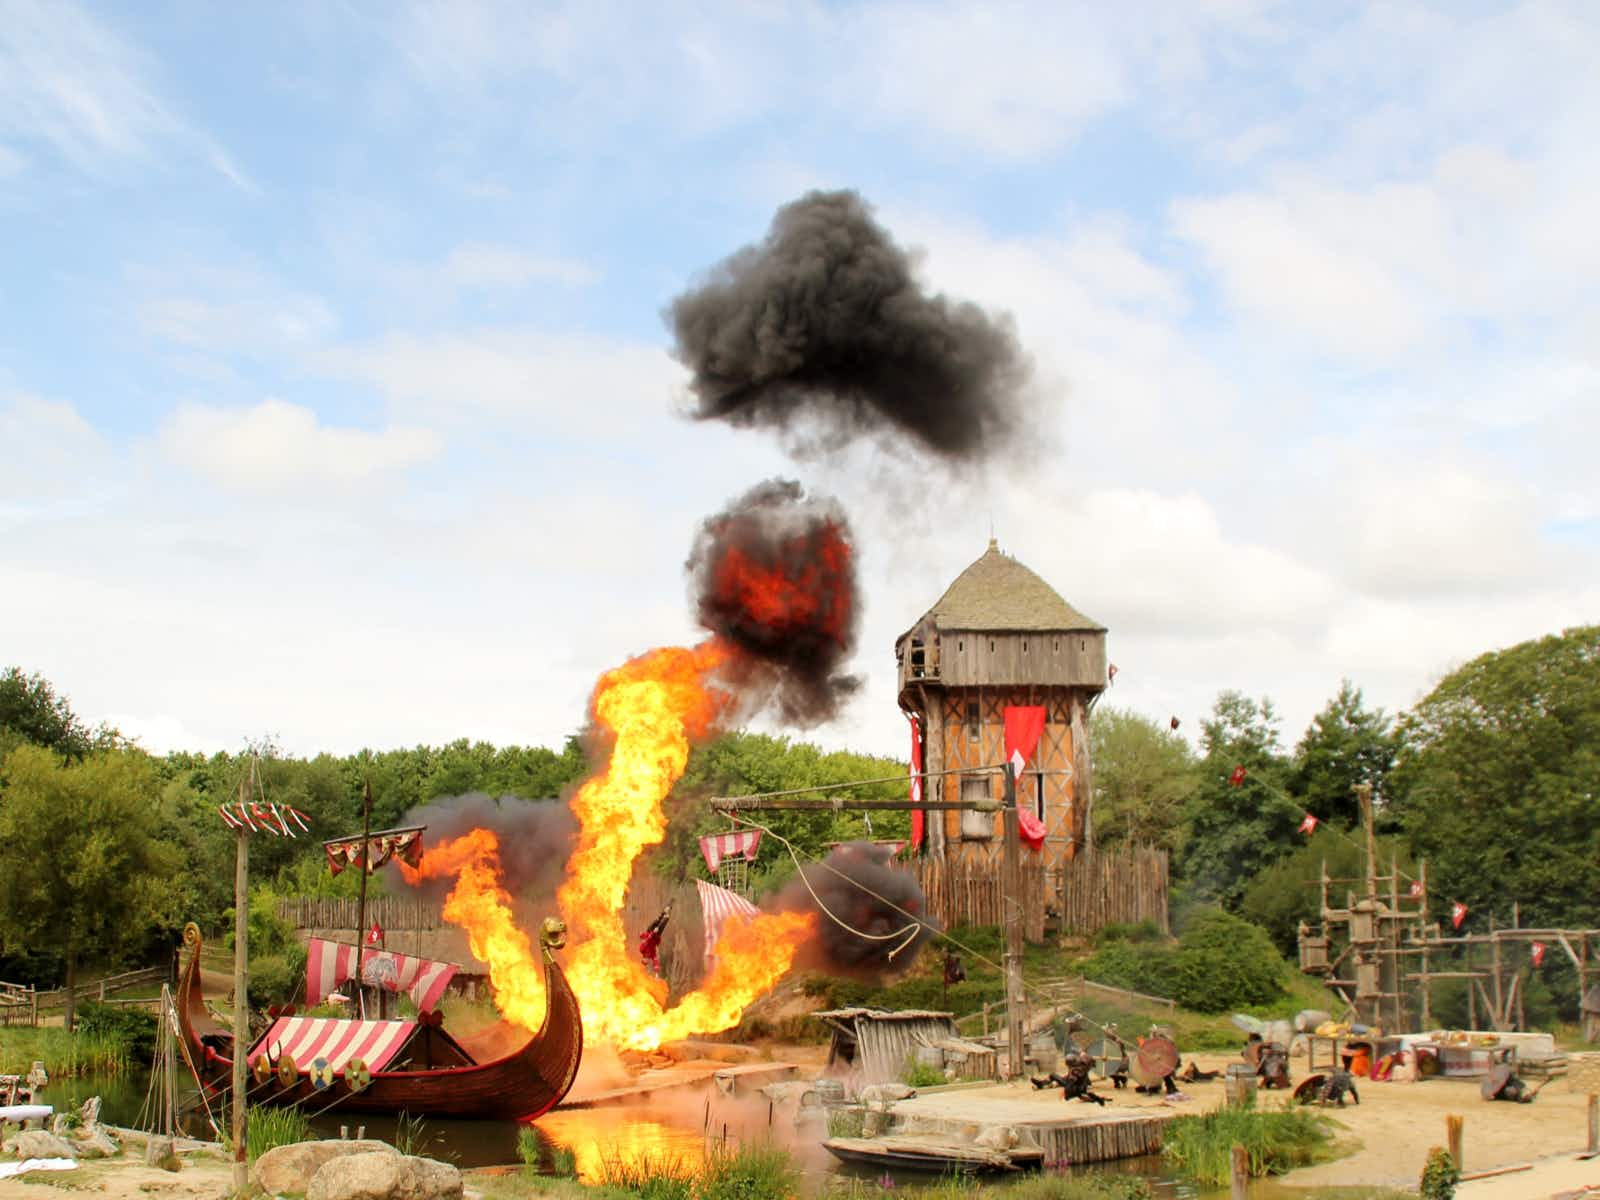 10 alternative theme parks for families: move aside Mickey